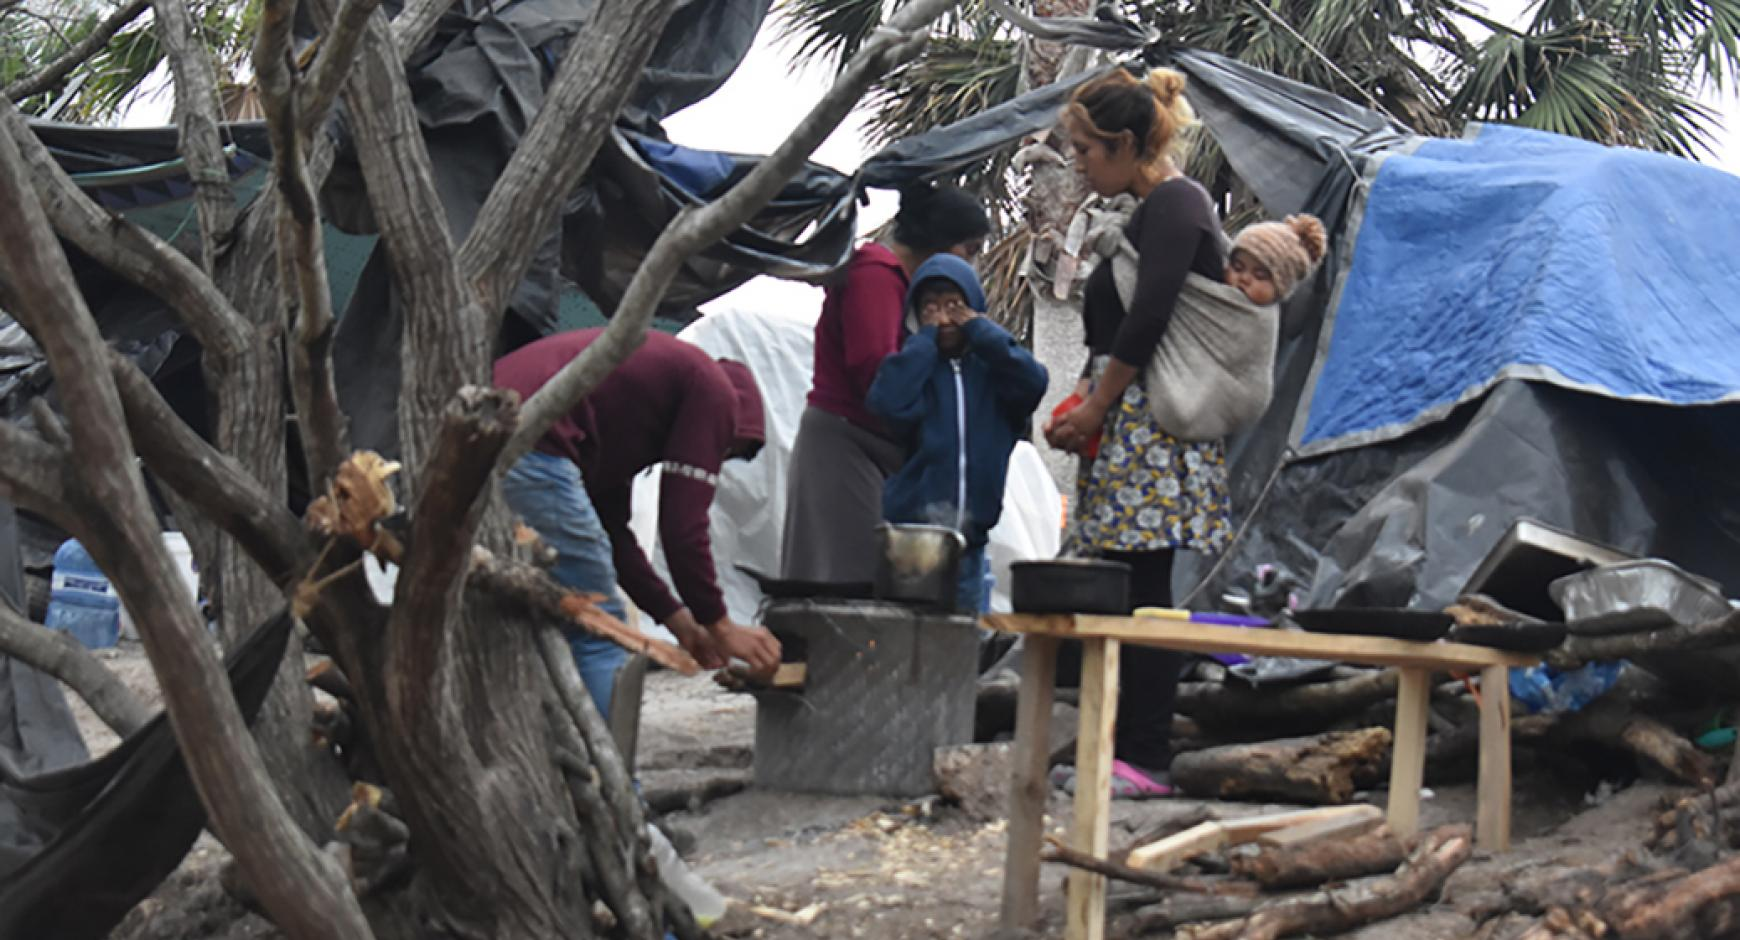 woman with child in refugee camp surrounded by tents and working men